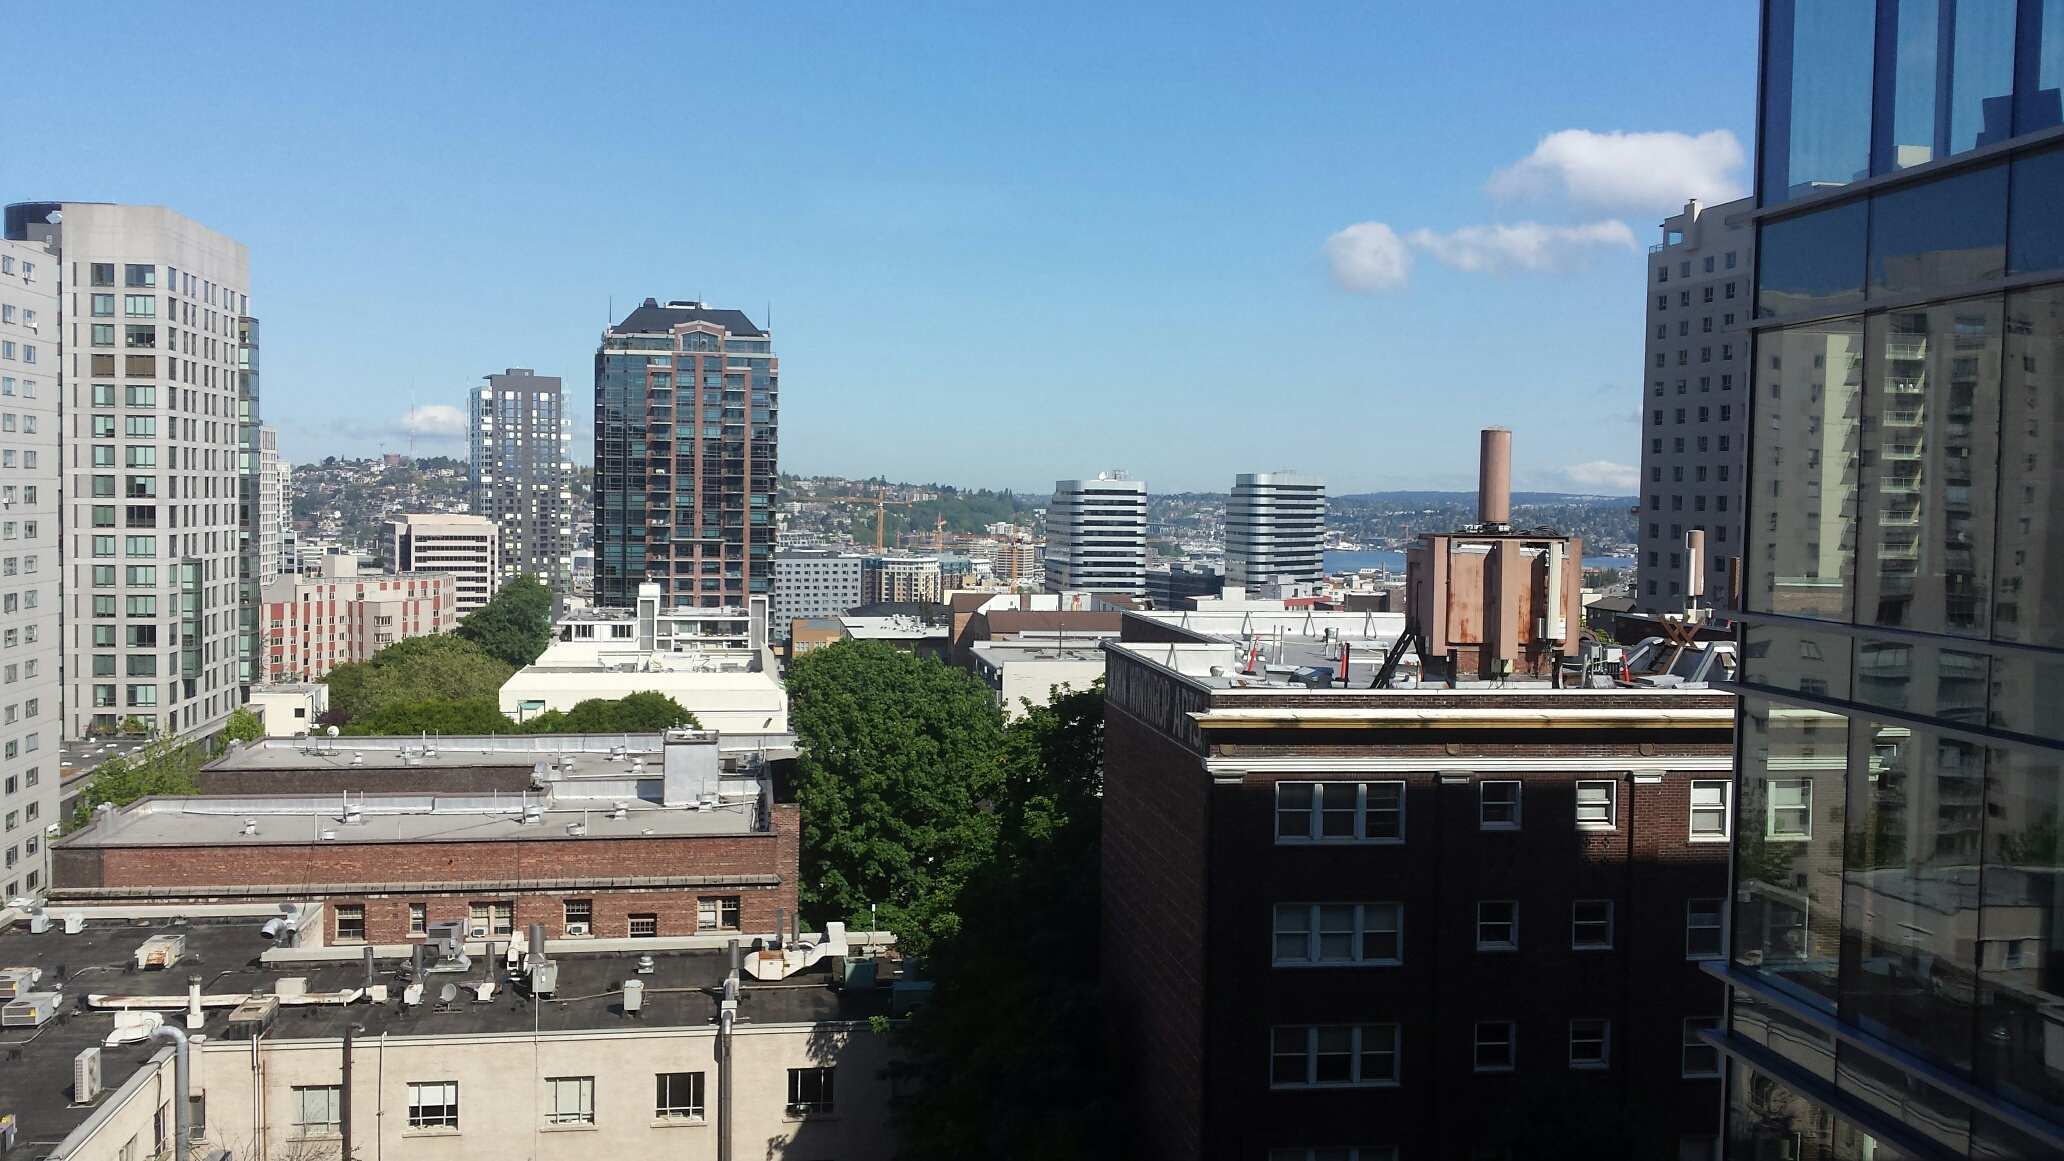 A view of South Lake Union and Downtown from the east